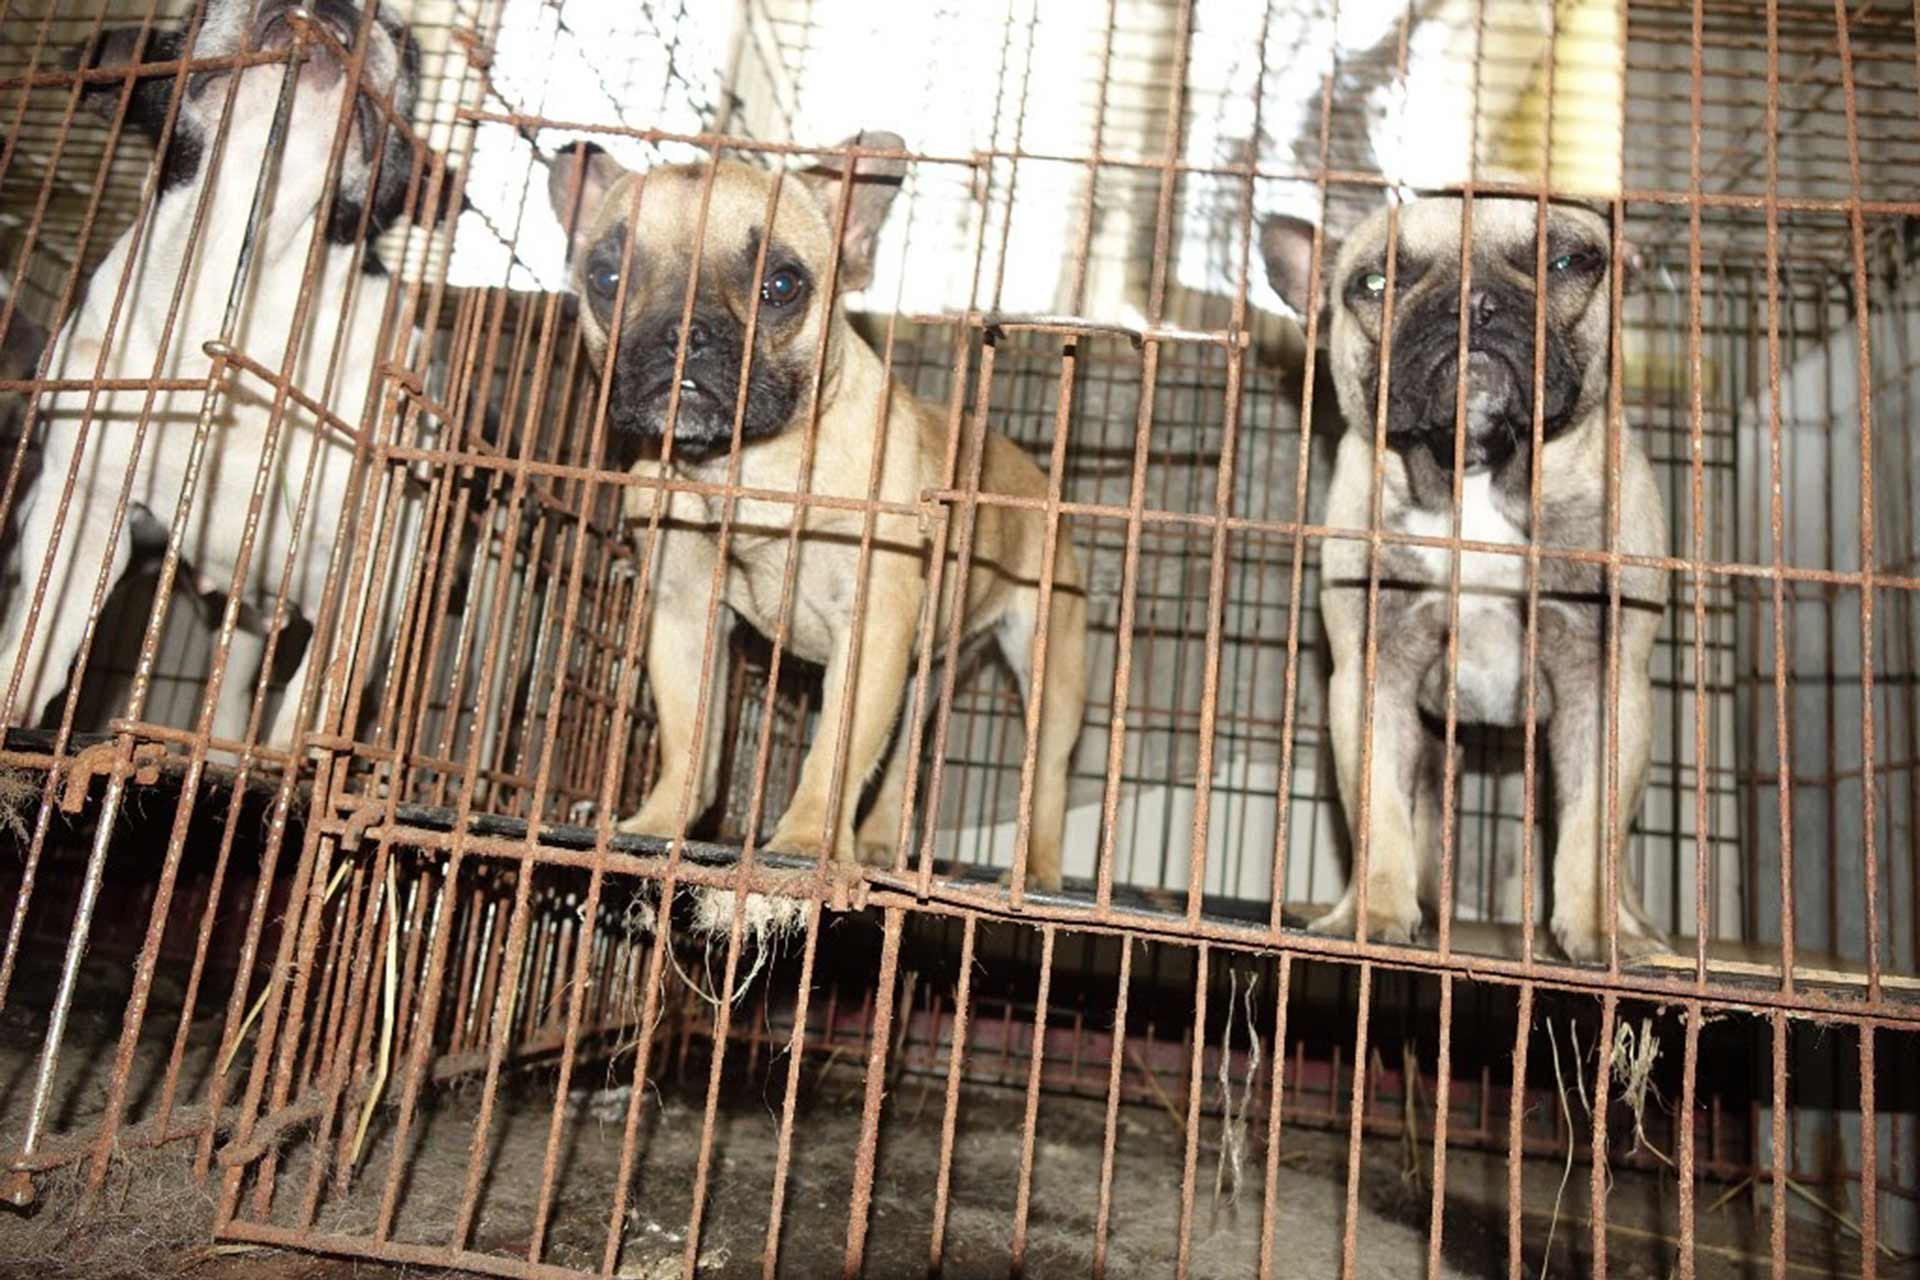 Three puppies in cages